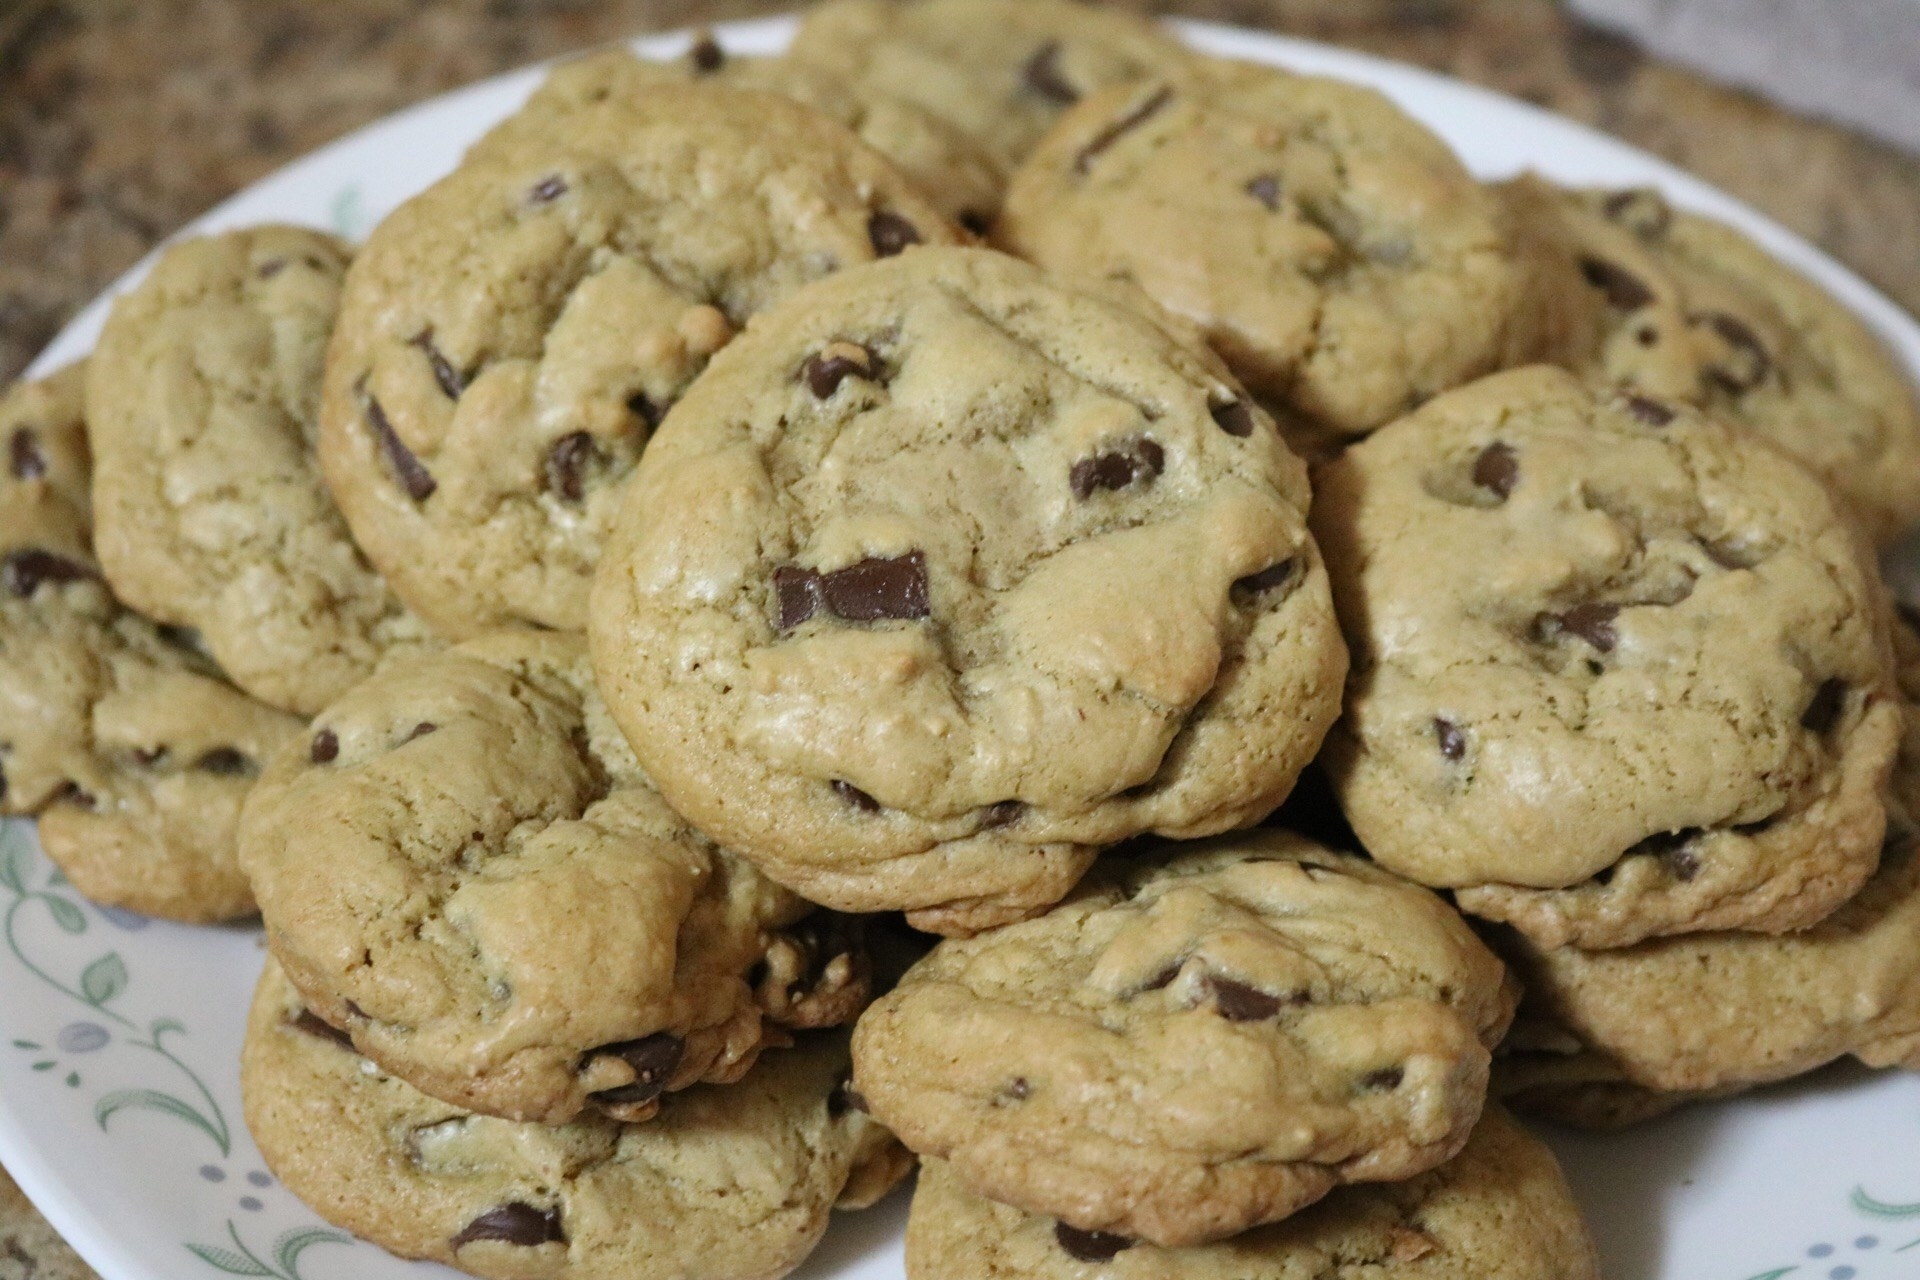 A plate full of fully baked cookies piled on top of each other